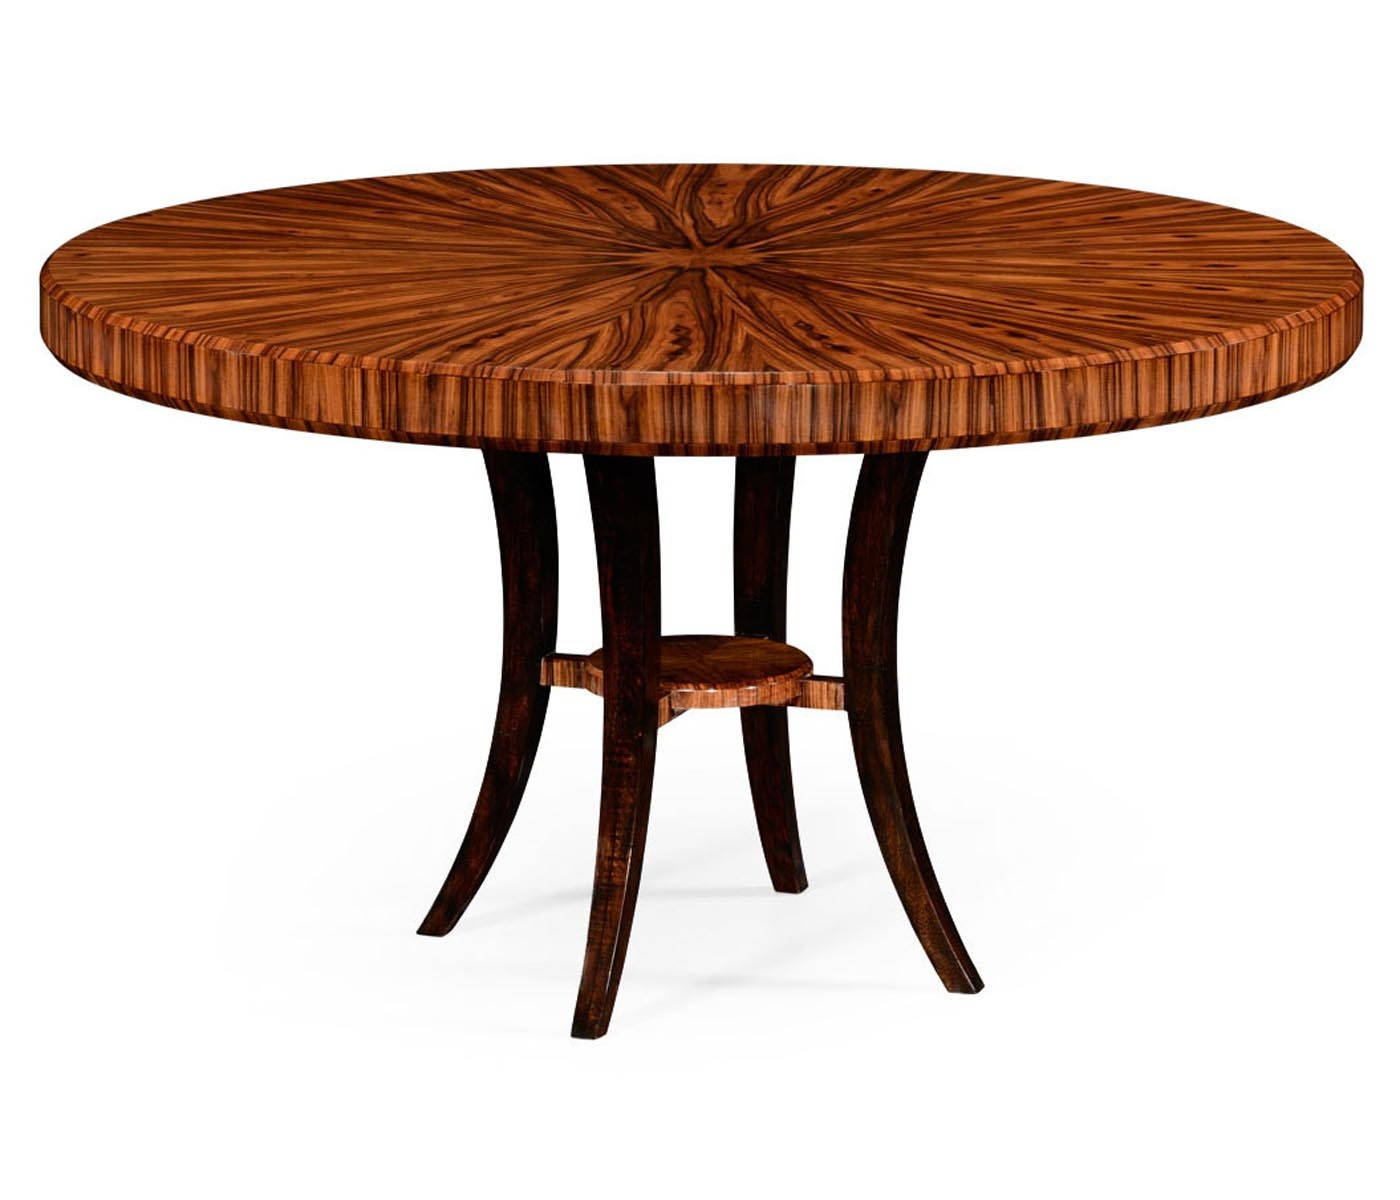 6 seater round dining table swanky interiors for 6 seater dining room table